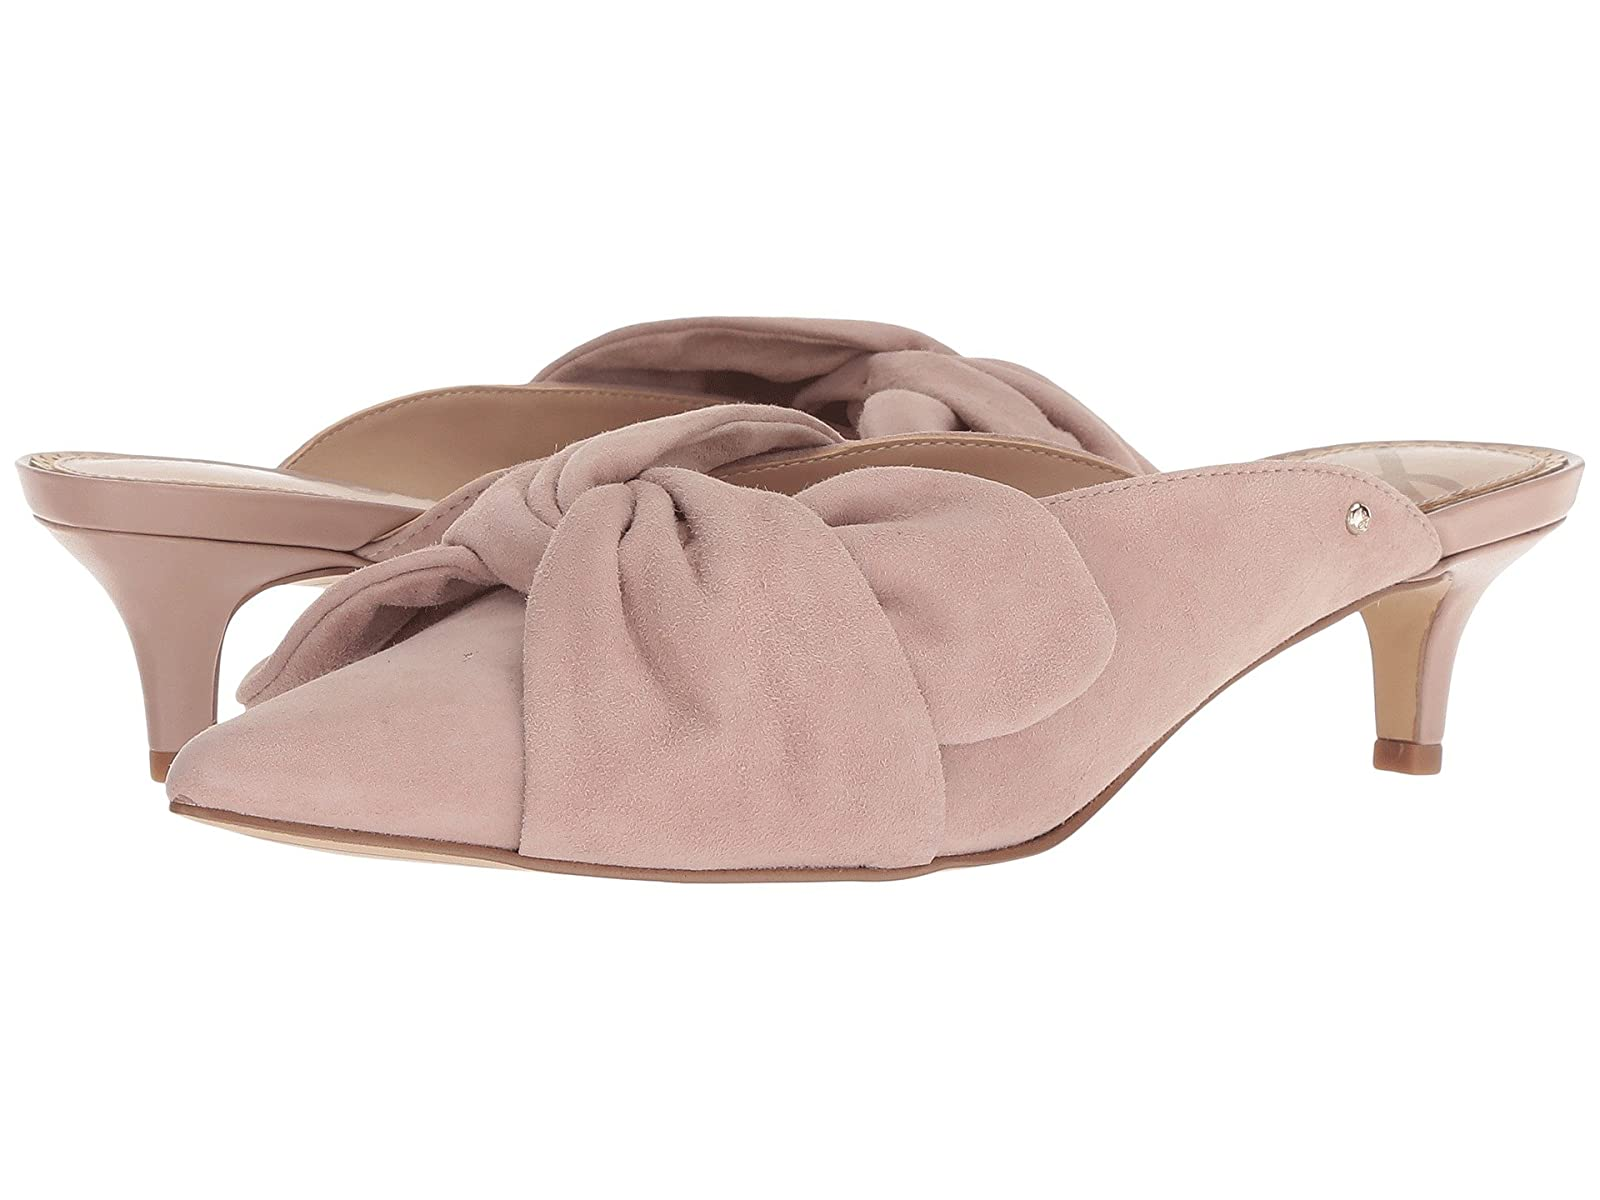 Sam Edelman LaneyCheap and distinctive eye-catching shoes